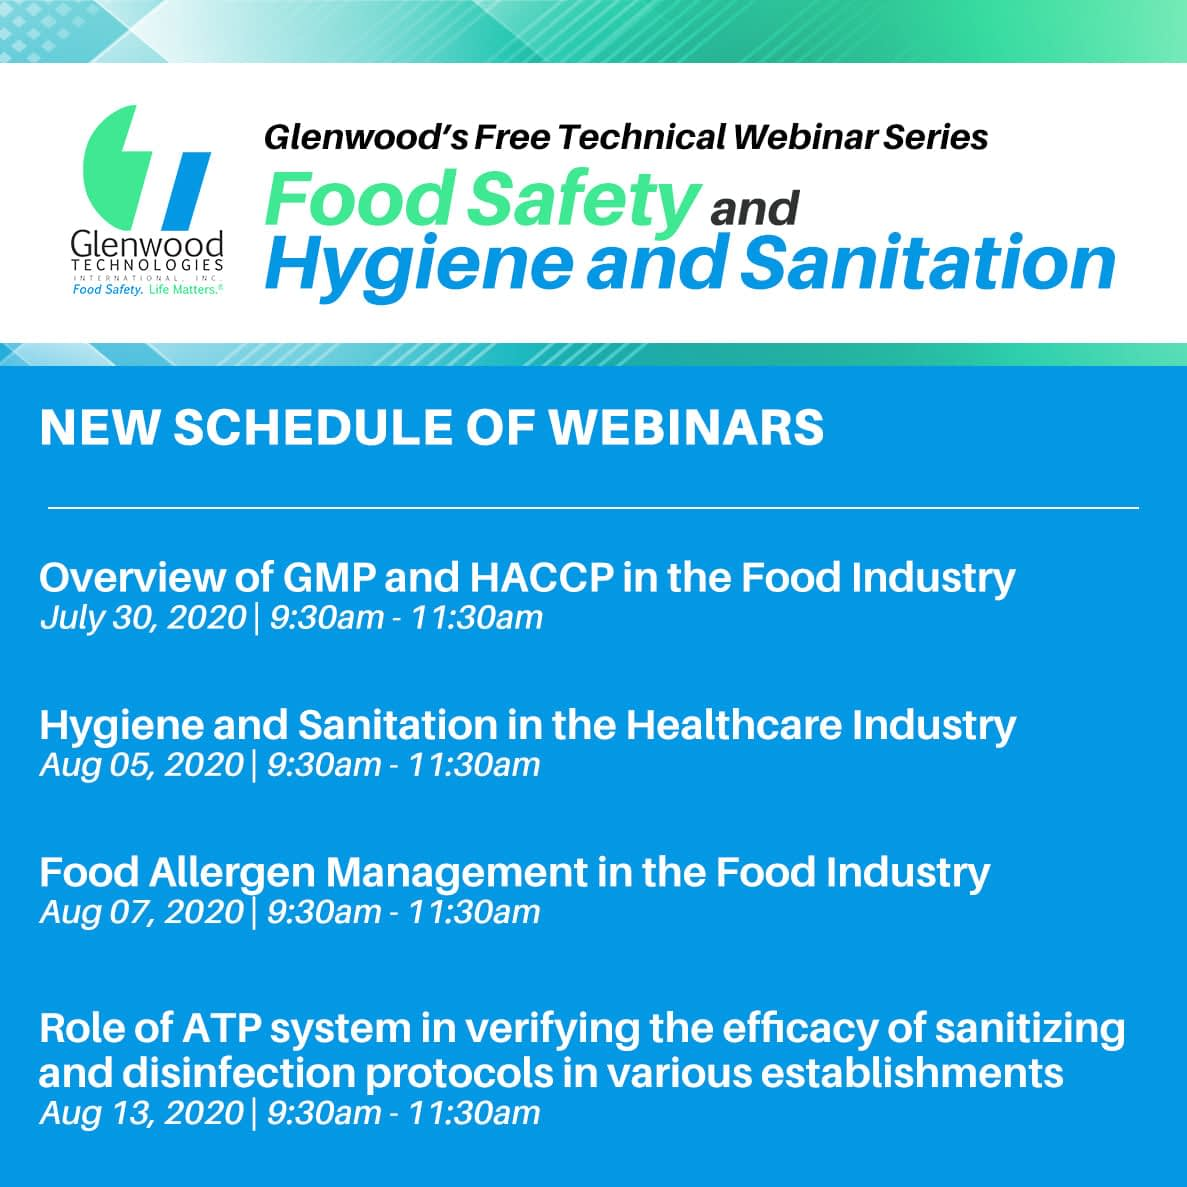 glenwood-technologies-food-safety-philippines-glenwood-technical-webinars-accupoint-compact-dry-fstm